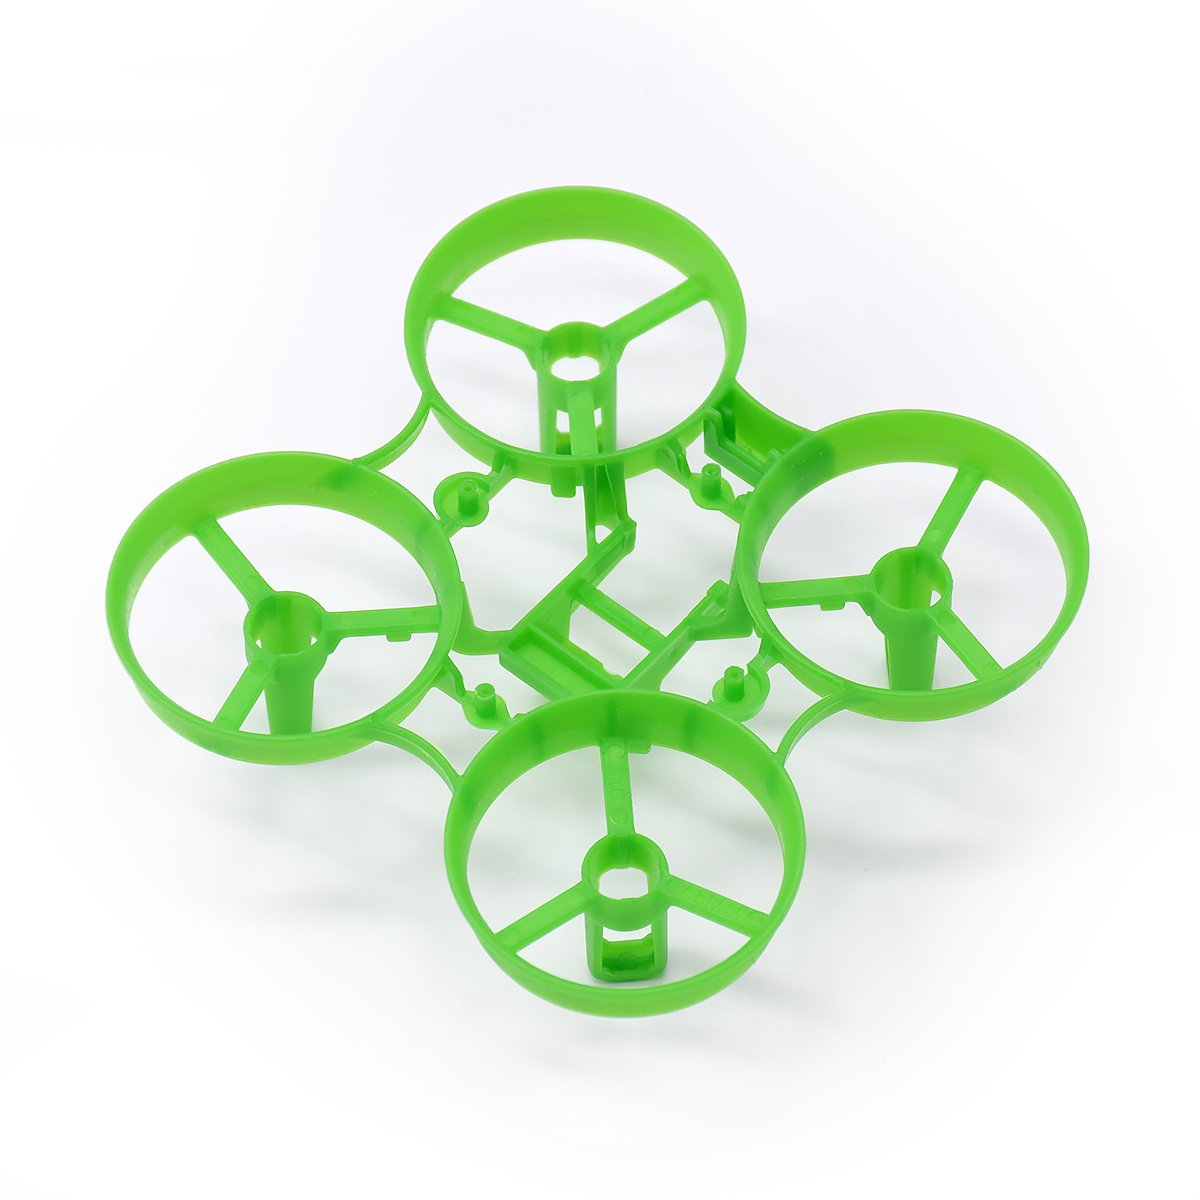 Beta FPV 7x16mm Motor用65mm Tiny Whoop V2 Frame(Green)